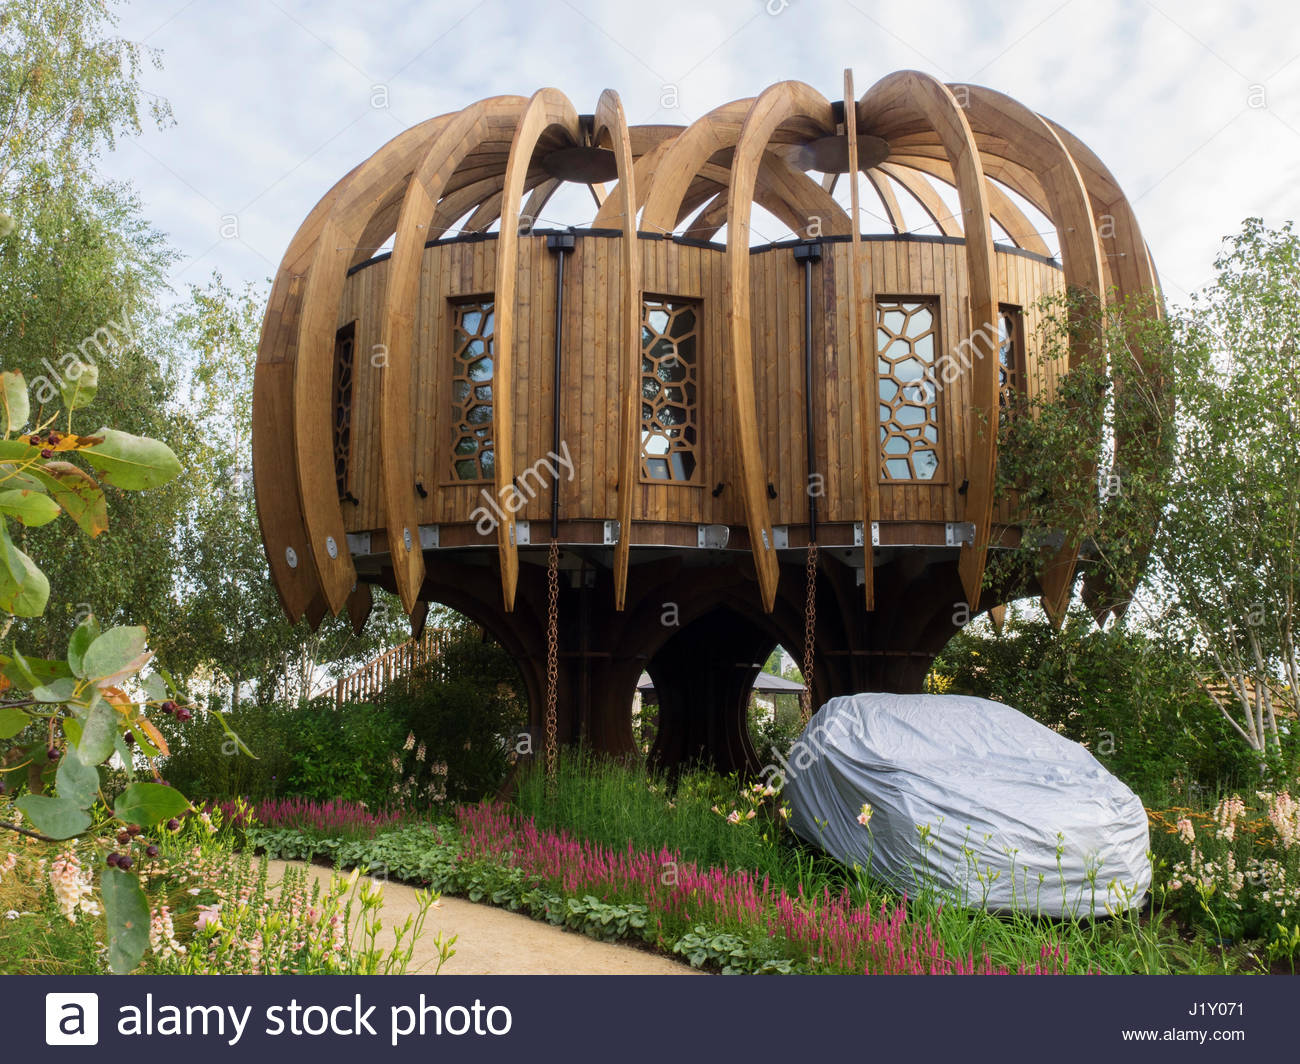 QUIET MARK TREEHOUSE AND GARDEN BY JOHN LEWIS DESIGNED BY DAVID DOMONEY - Stock Image